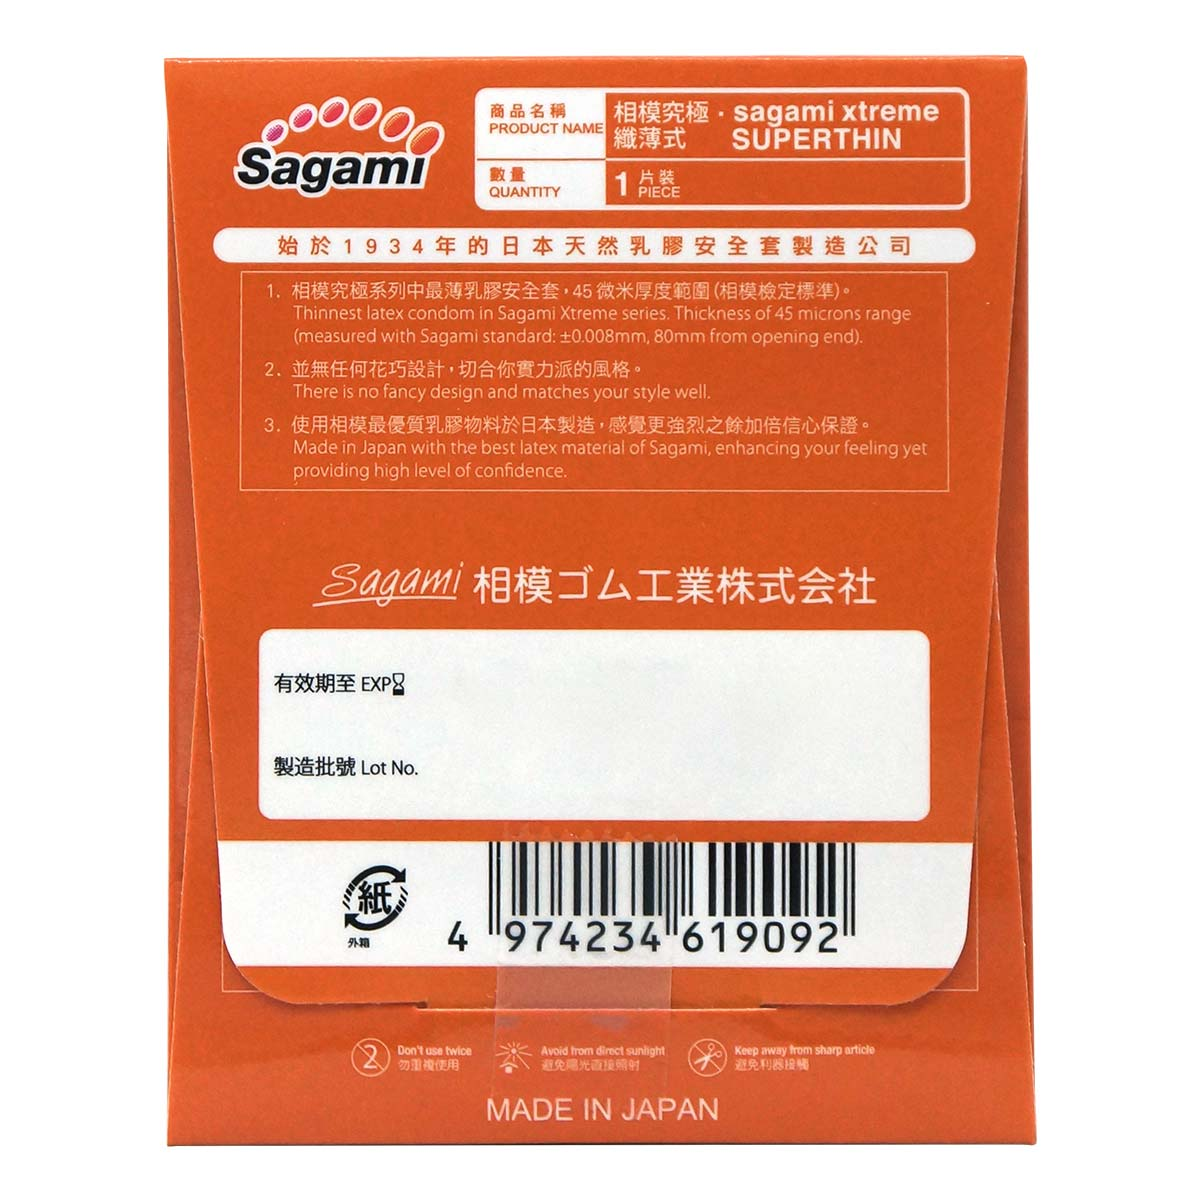 Sagami Xtreme Superthin (2nd generation) 1's Pack Latex Condom